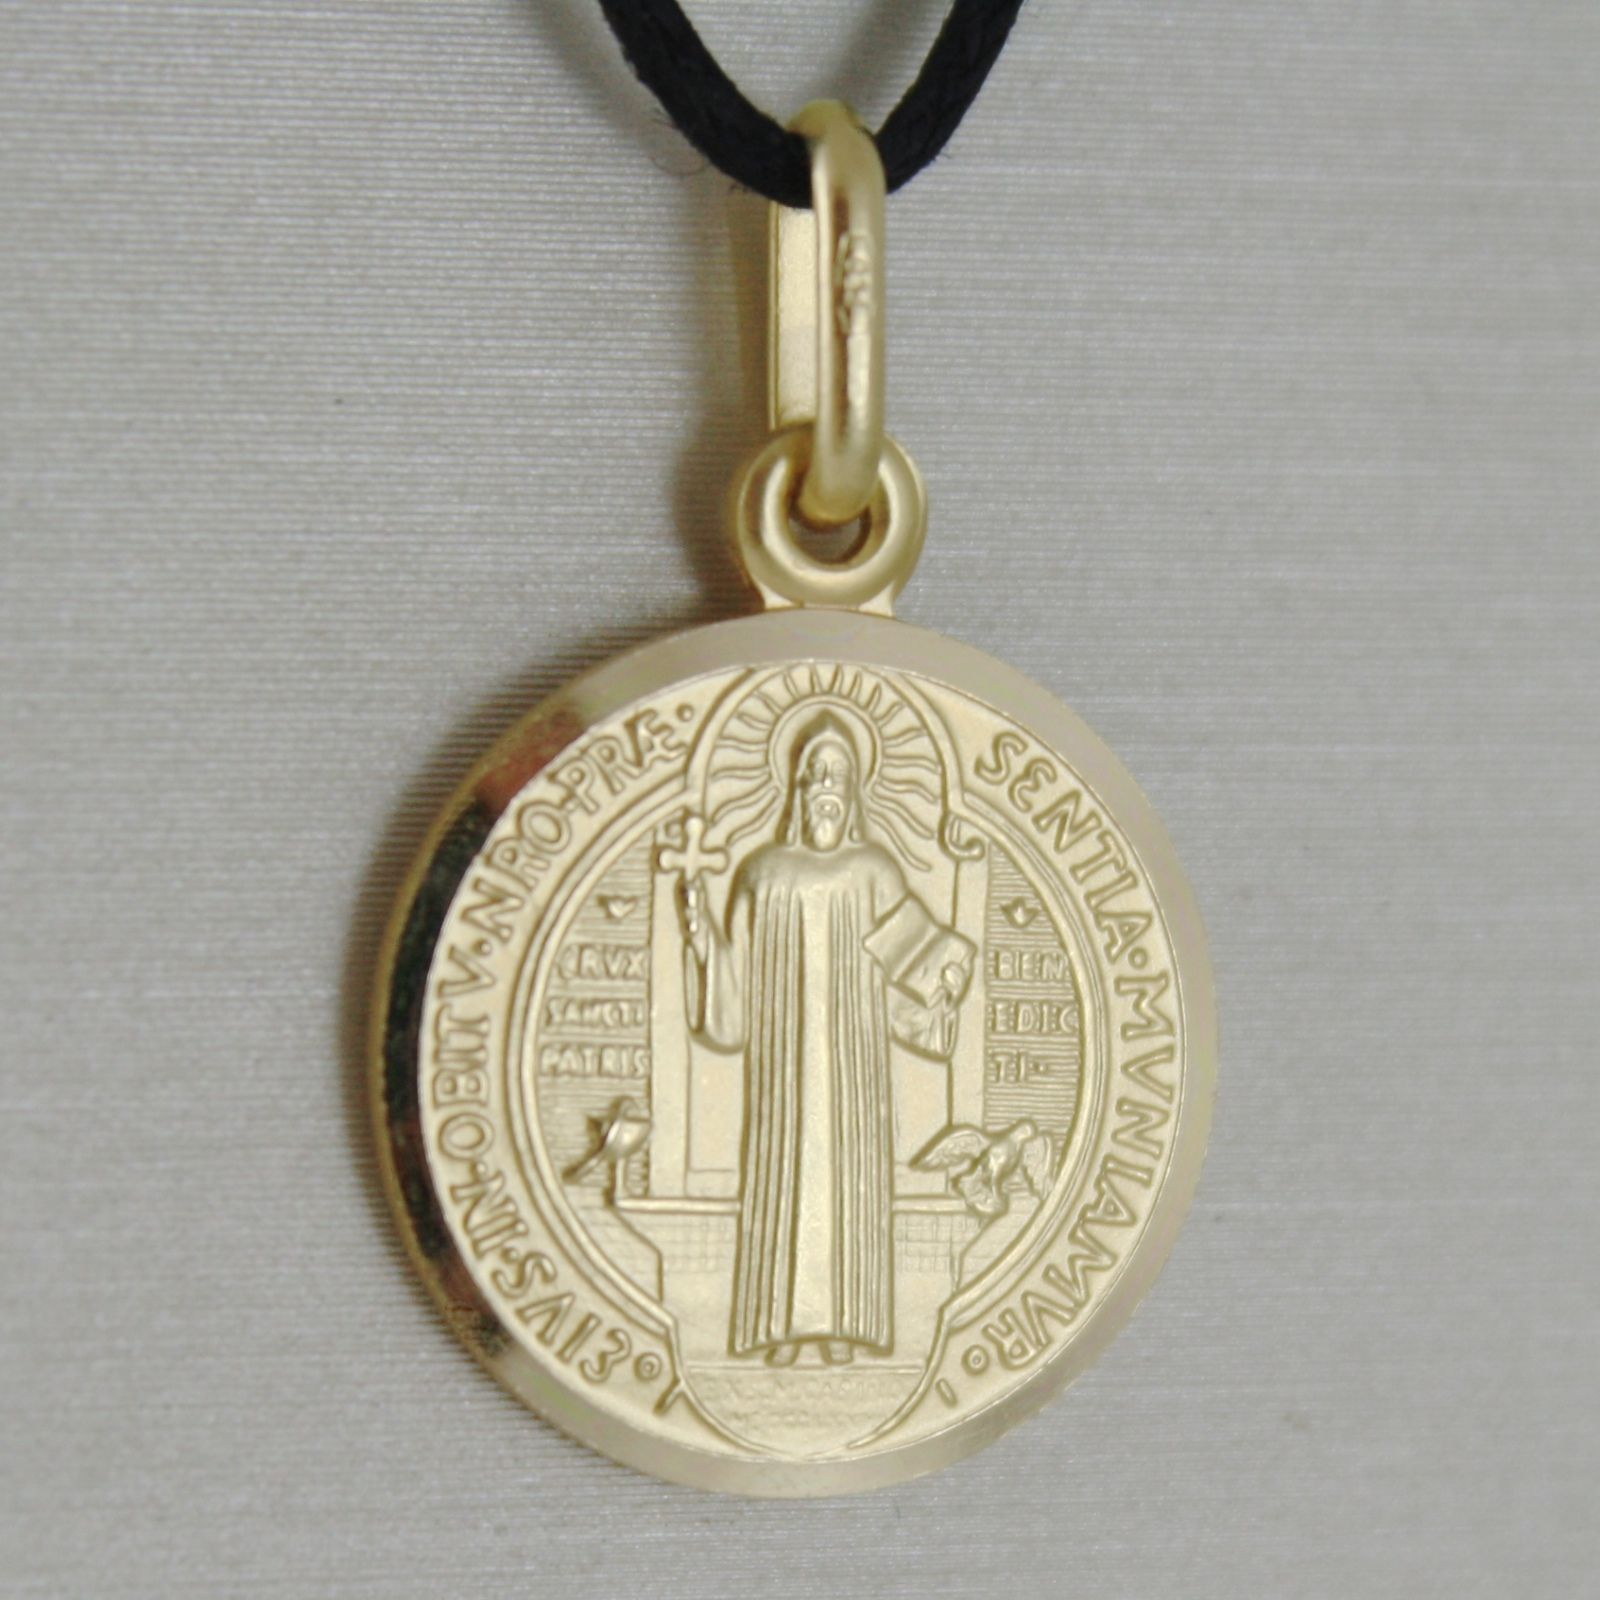 SOLID 18K YELLOW GOLD ST SAINT BENEDICT 17 MM MEDAL WITH CROSS, MADE IN ITALY